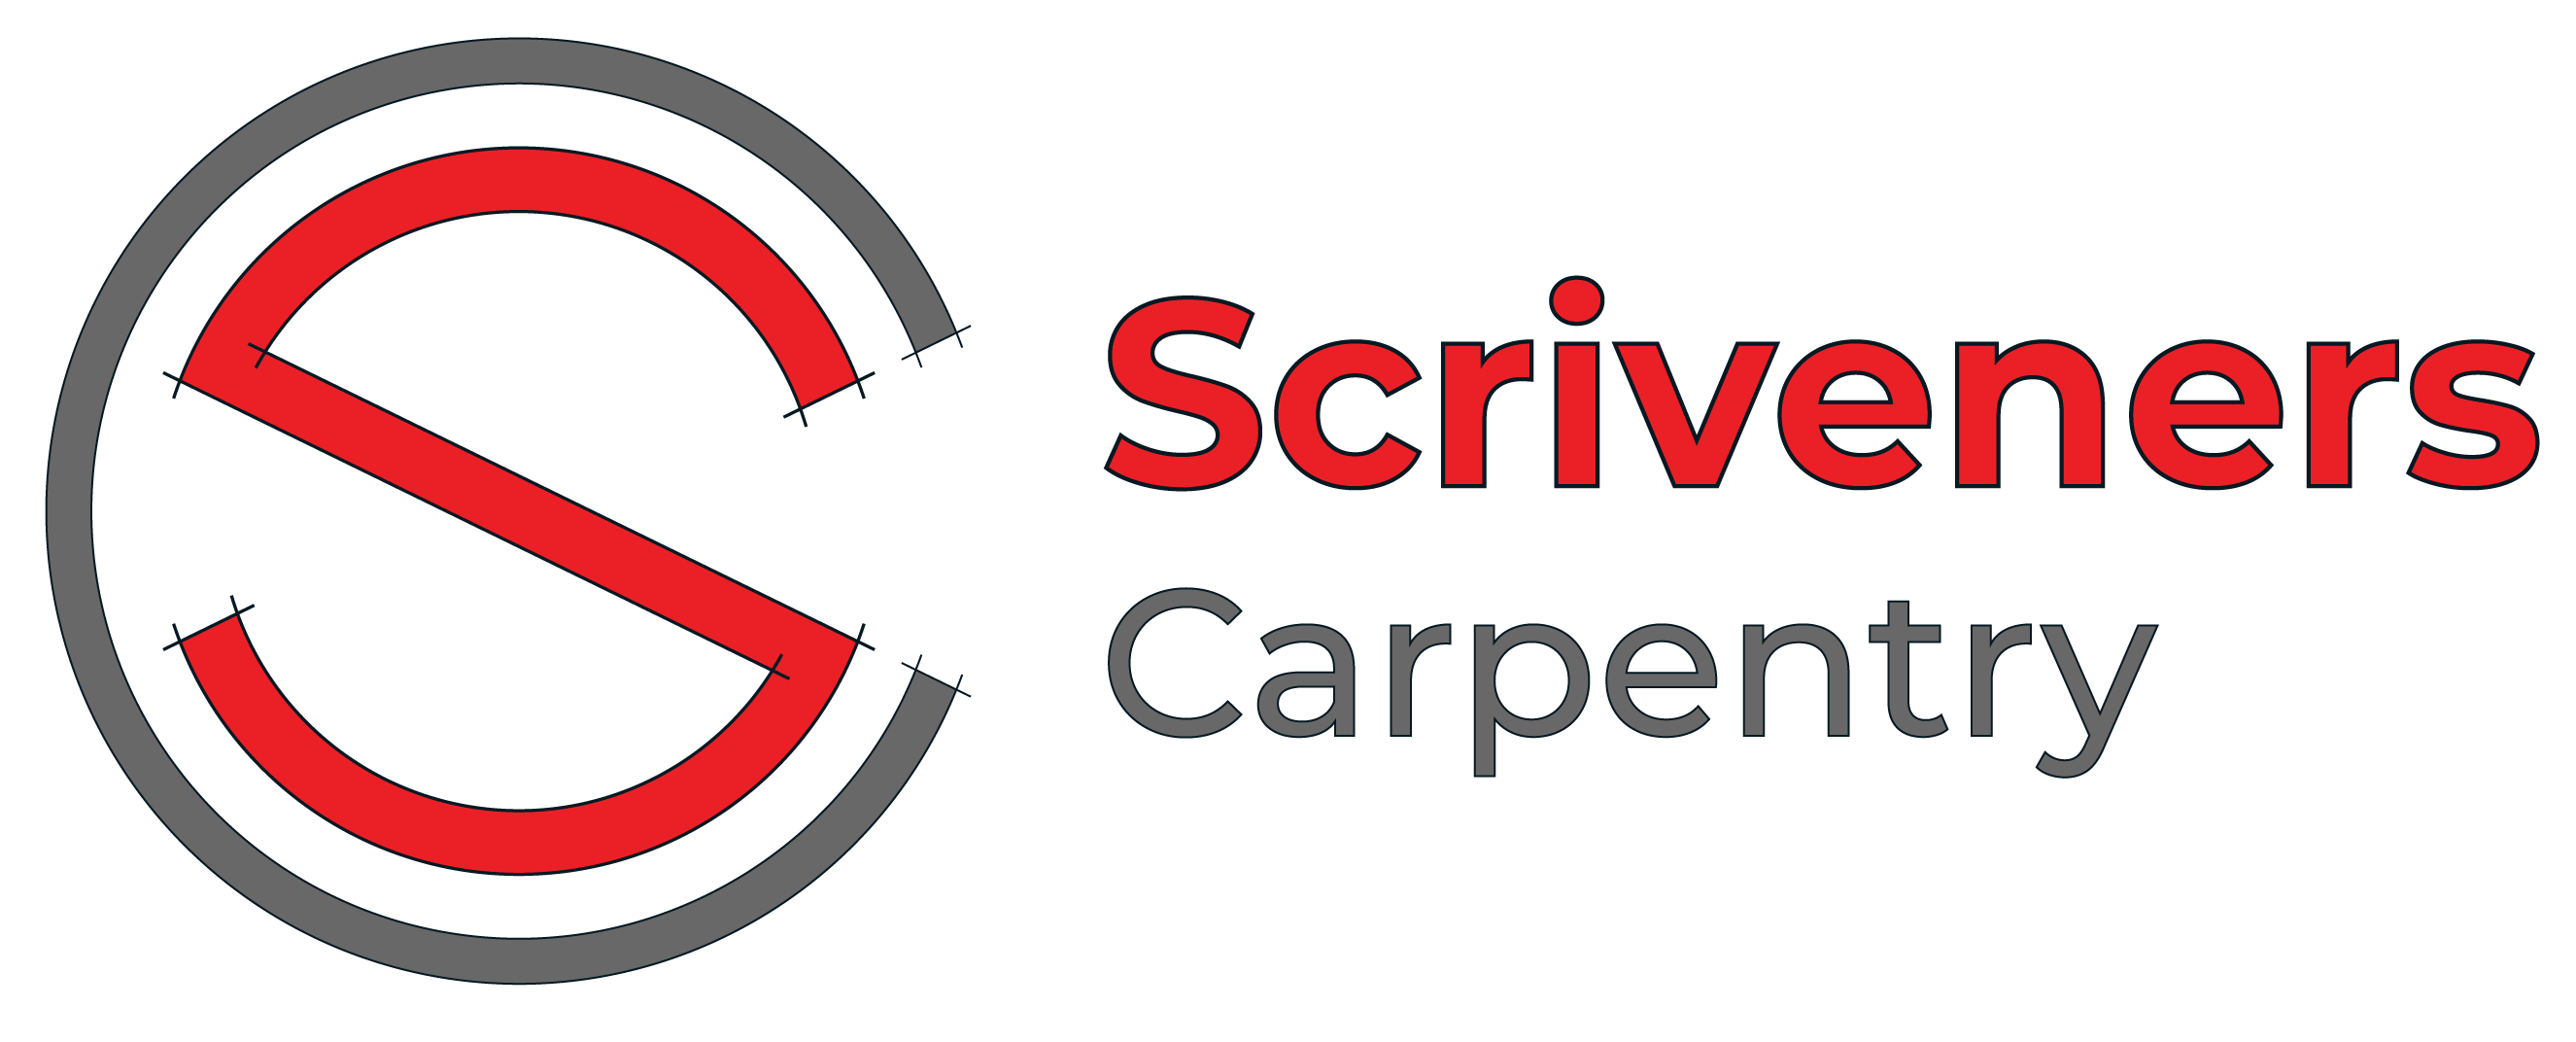 Site Logo Scriveners Carpentry 01